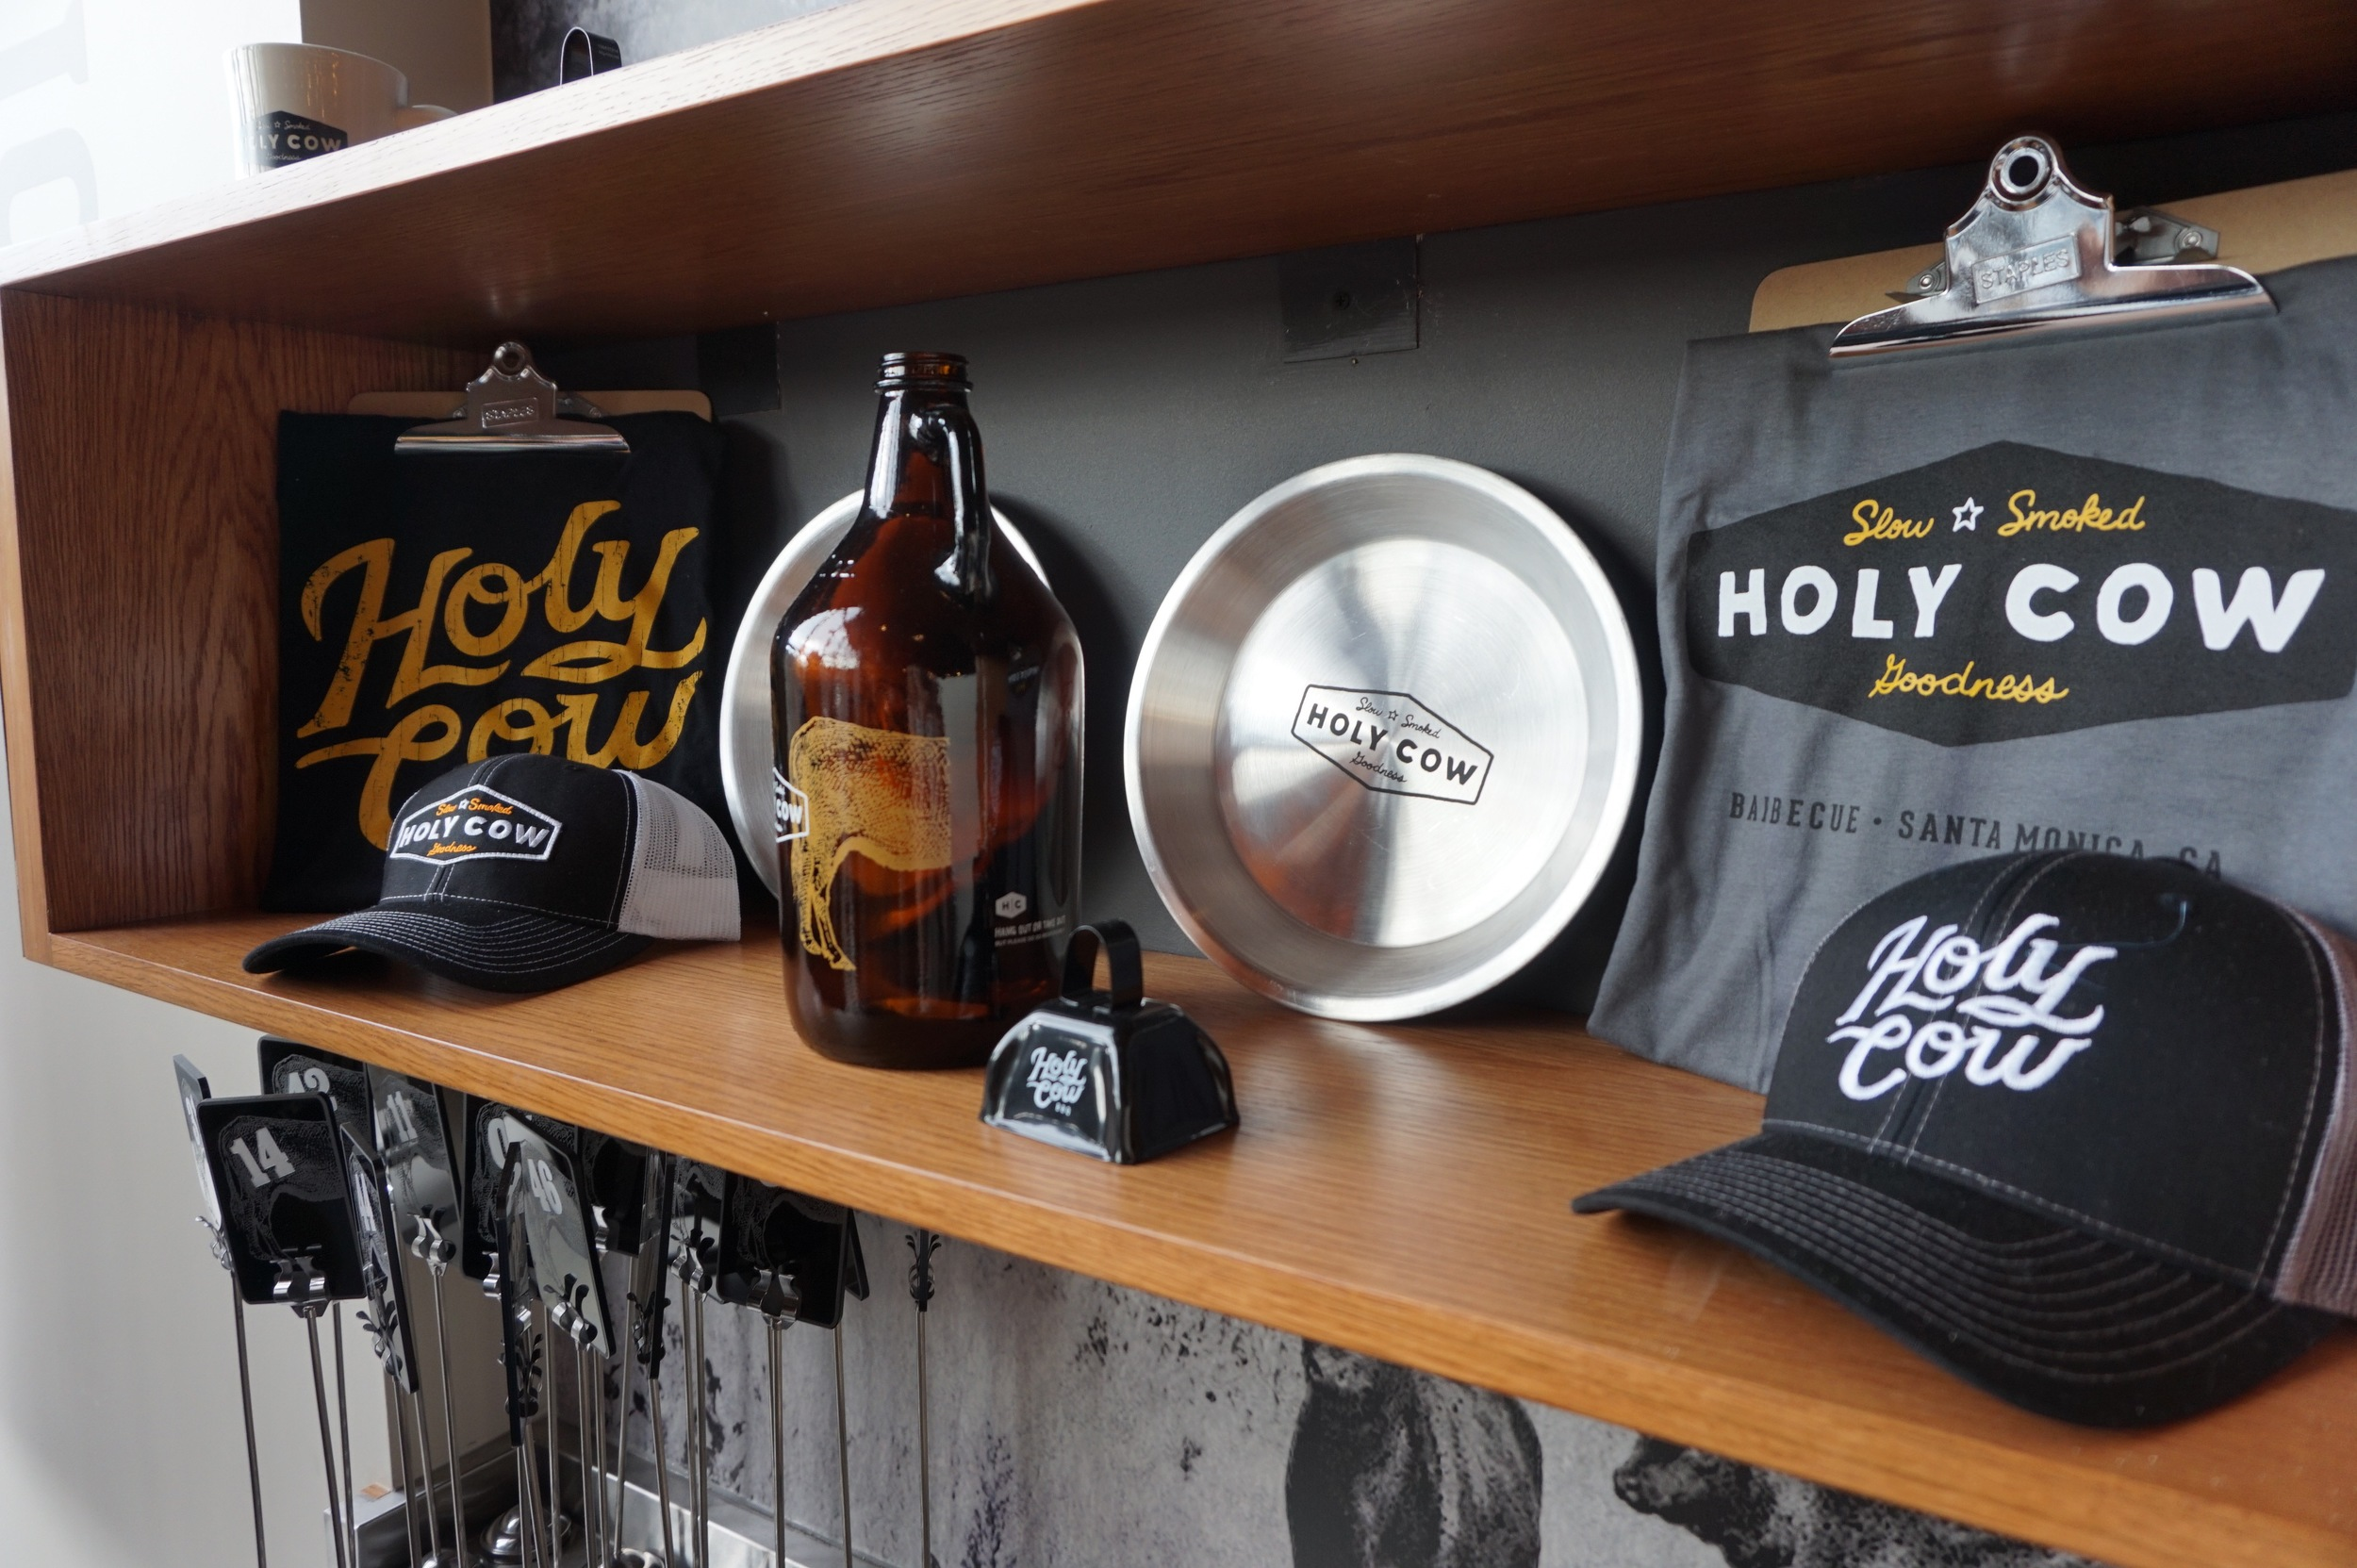 Merchandise at Holy Cow